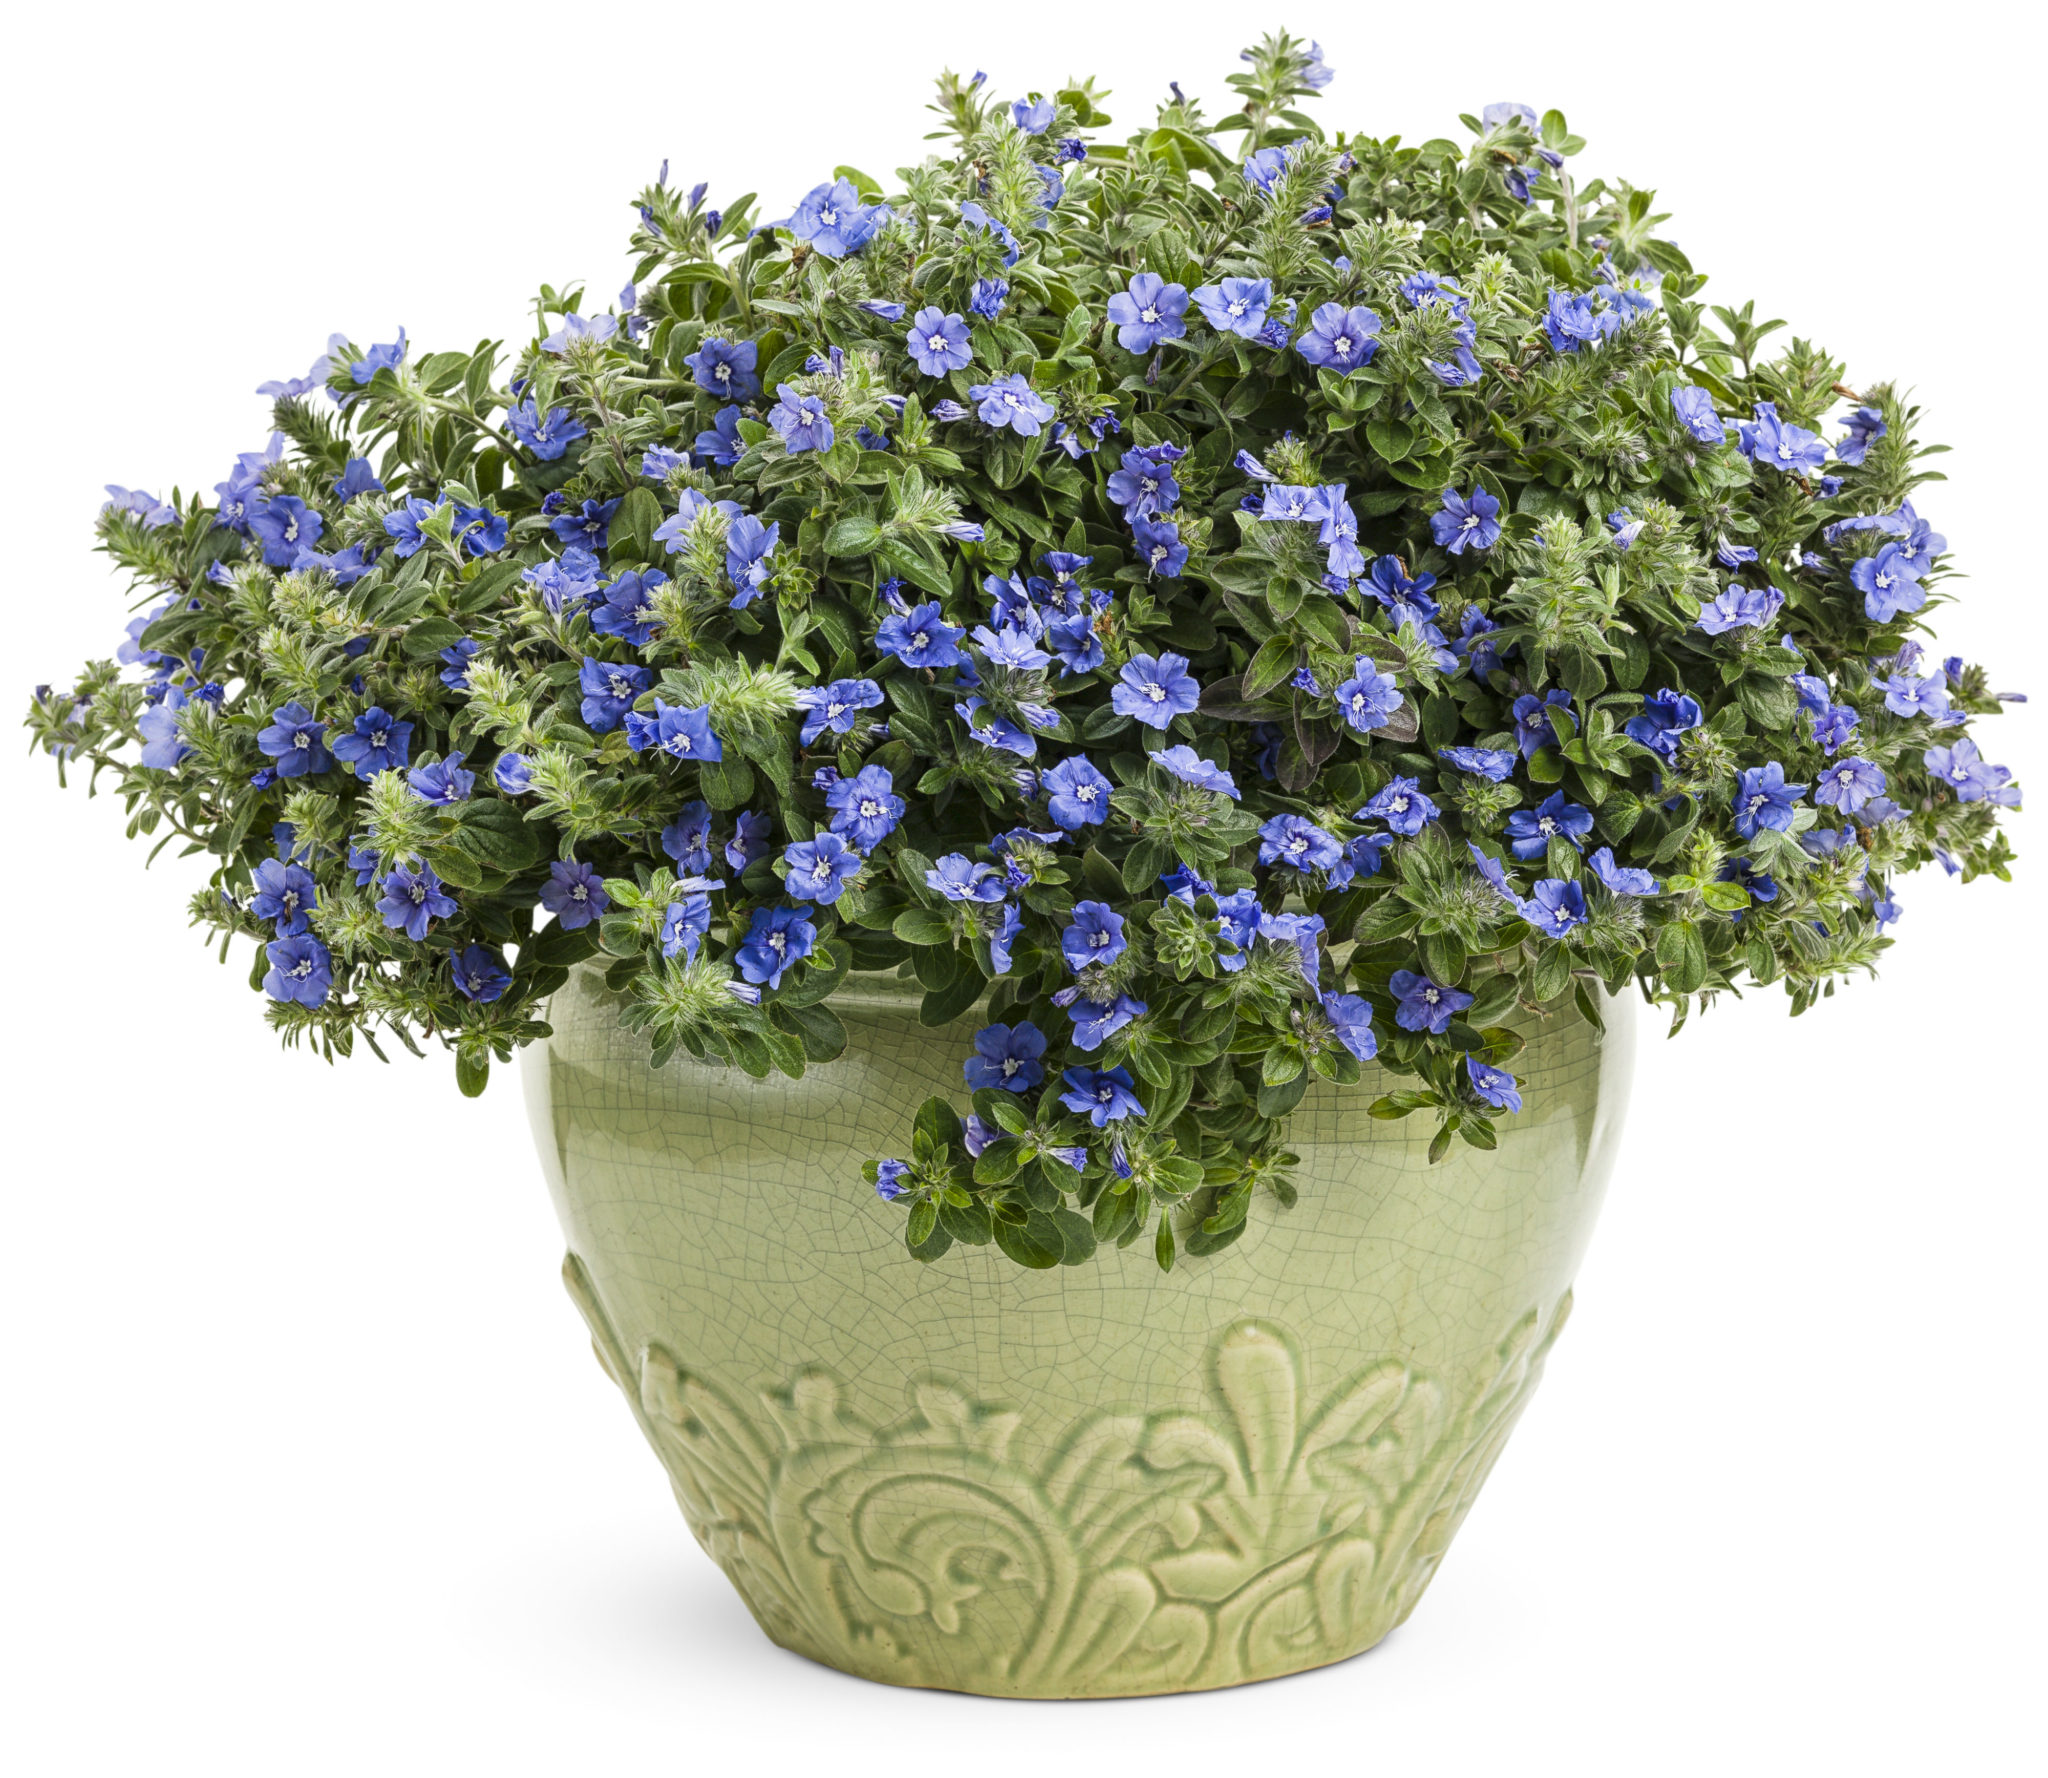 Heavenly glory evolvulus blue my mind life is a garden this plant will truly blow your mind with its true blue flowers and consistent flowering it is perfect to use as a ground cover in the garden or in izmirmasajfo